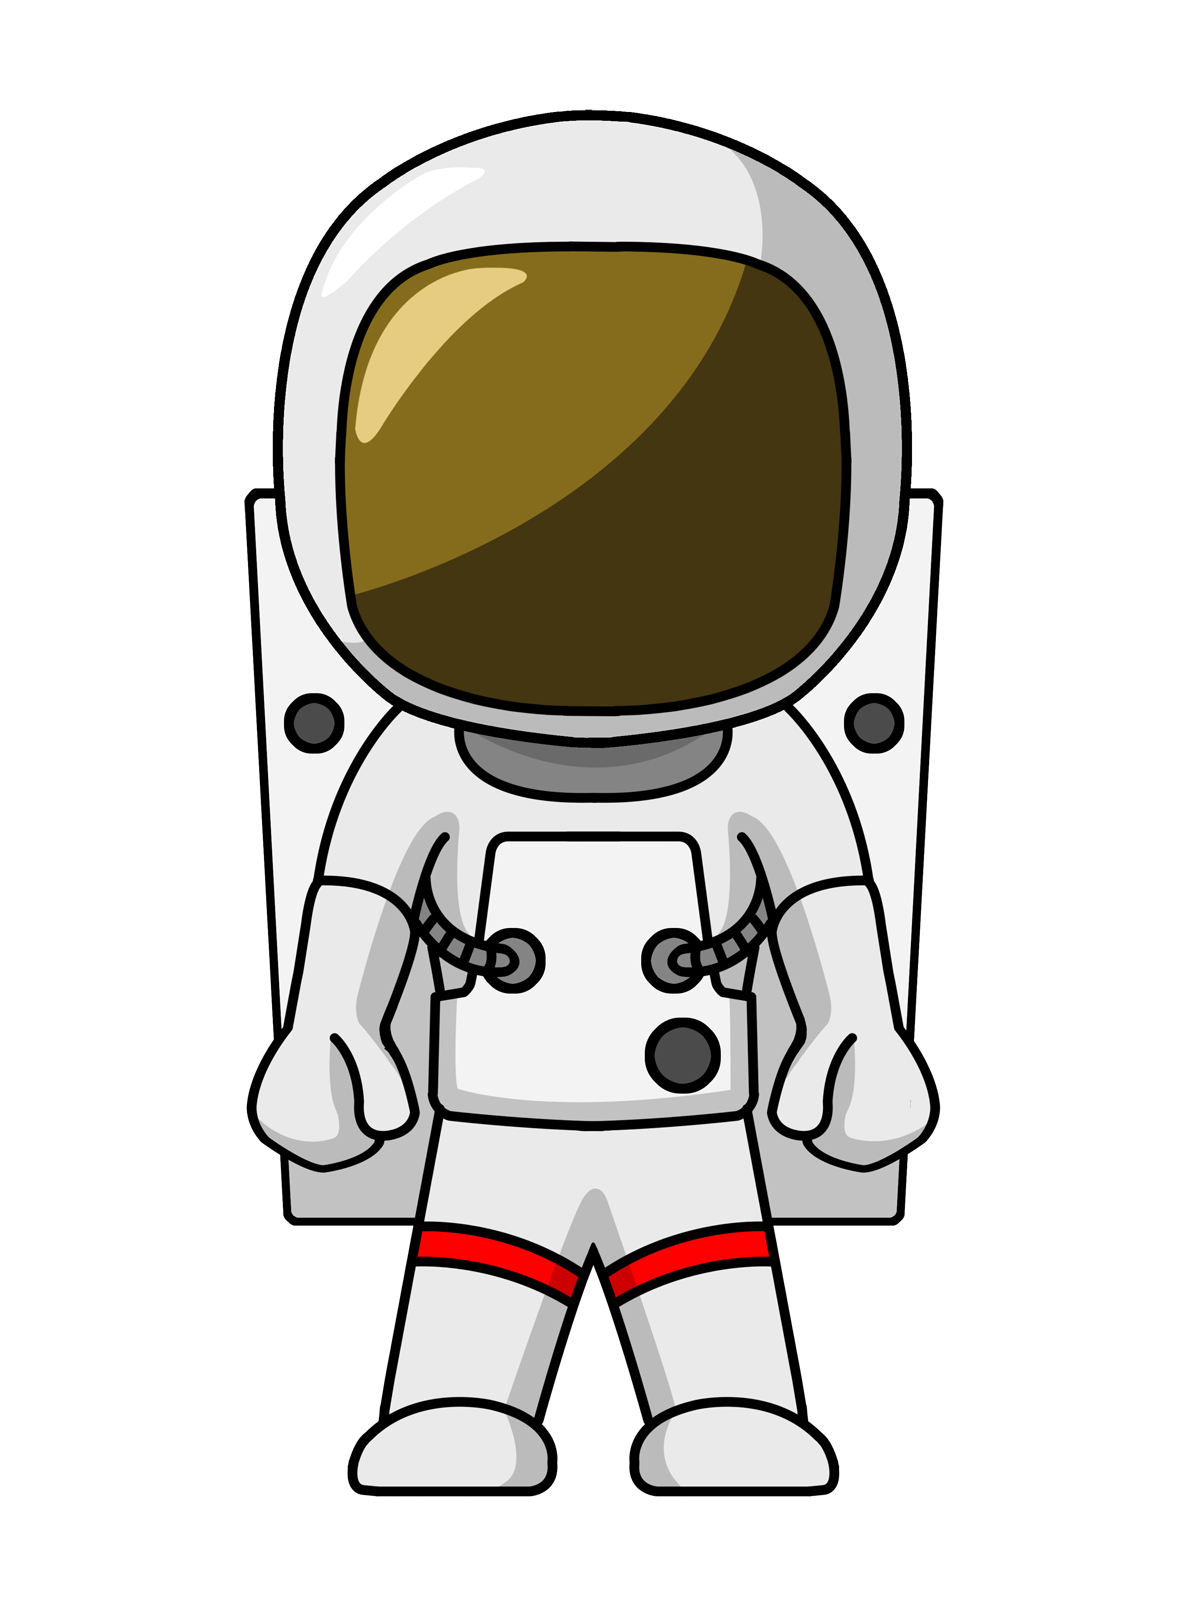 1200x1600 Astronaut Clip Art Images Free For Commercial Use 3d Print Ideas